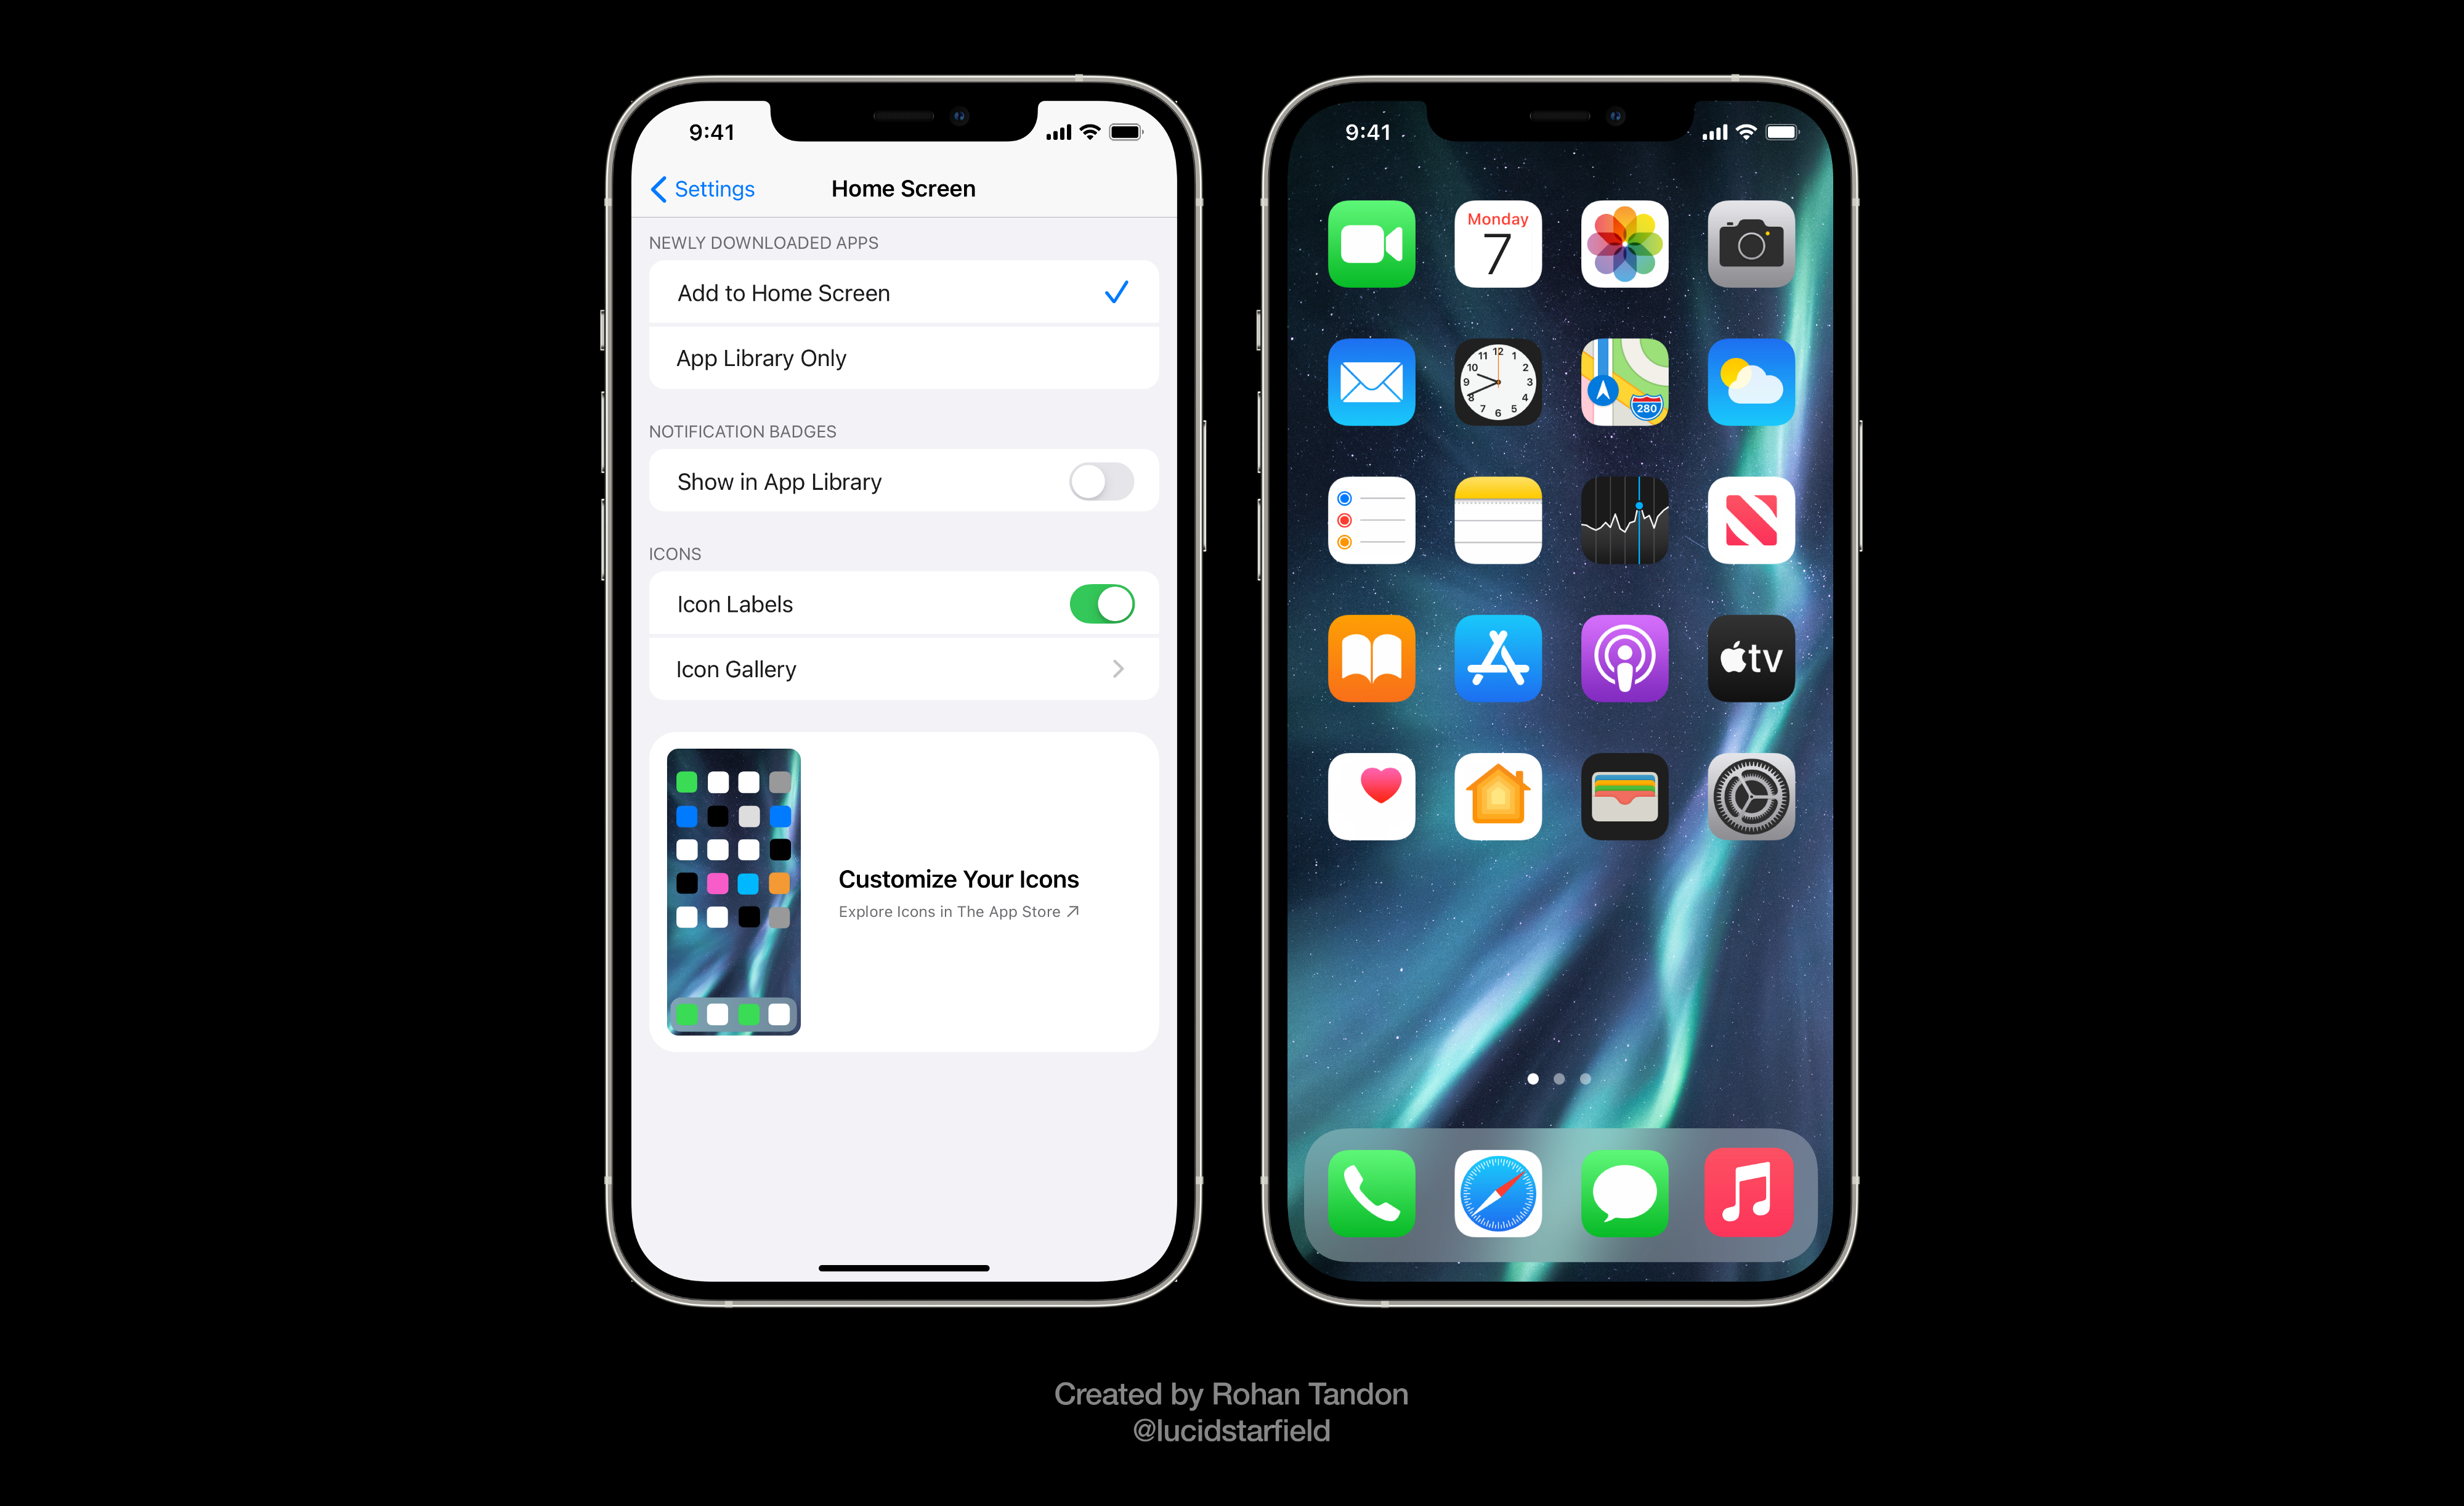 iOS 15 Aurora visualizes a new option to turn off Home Screen icon labels entirely